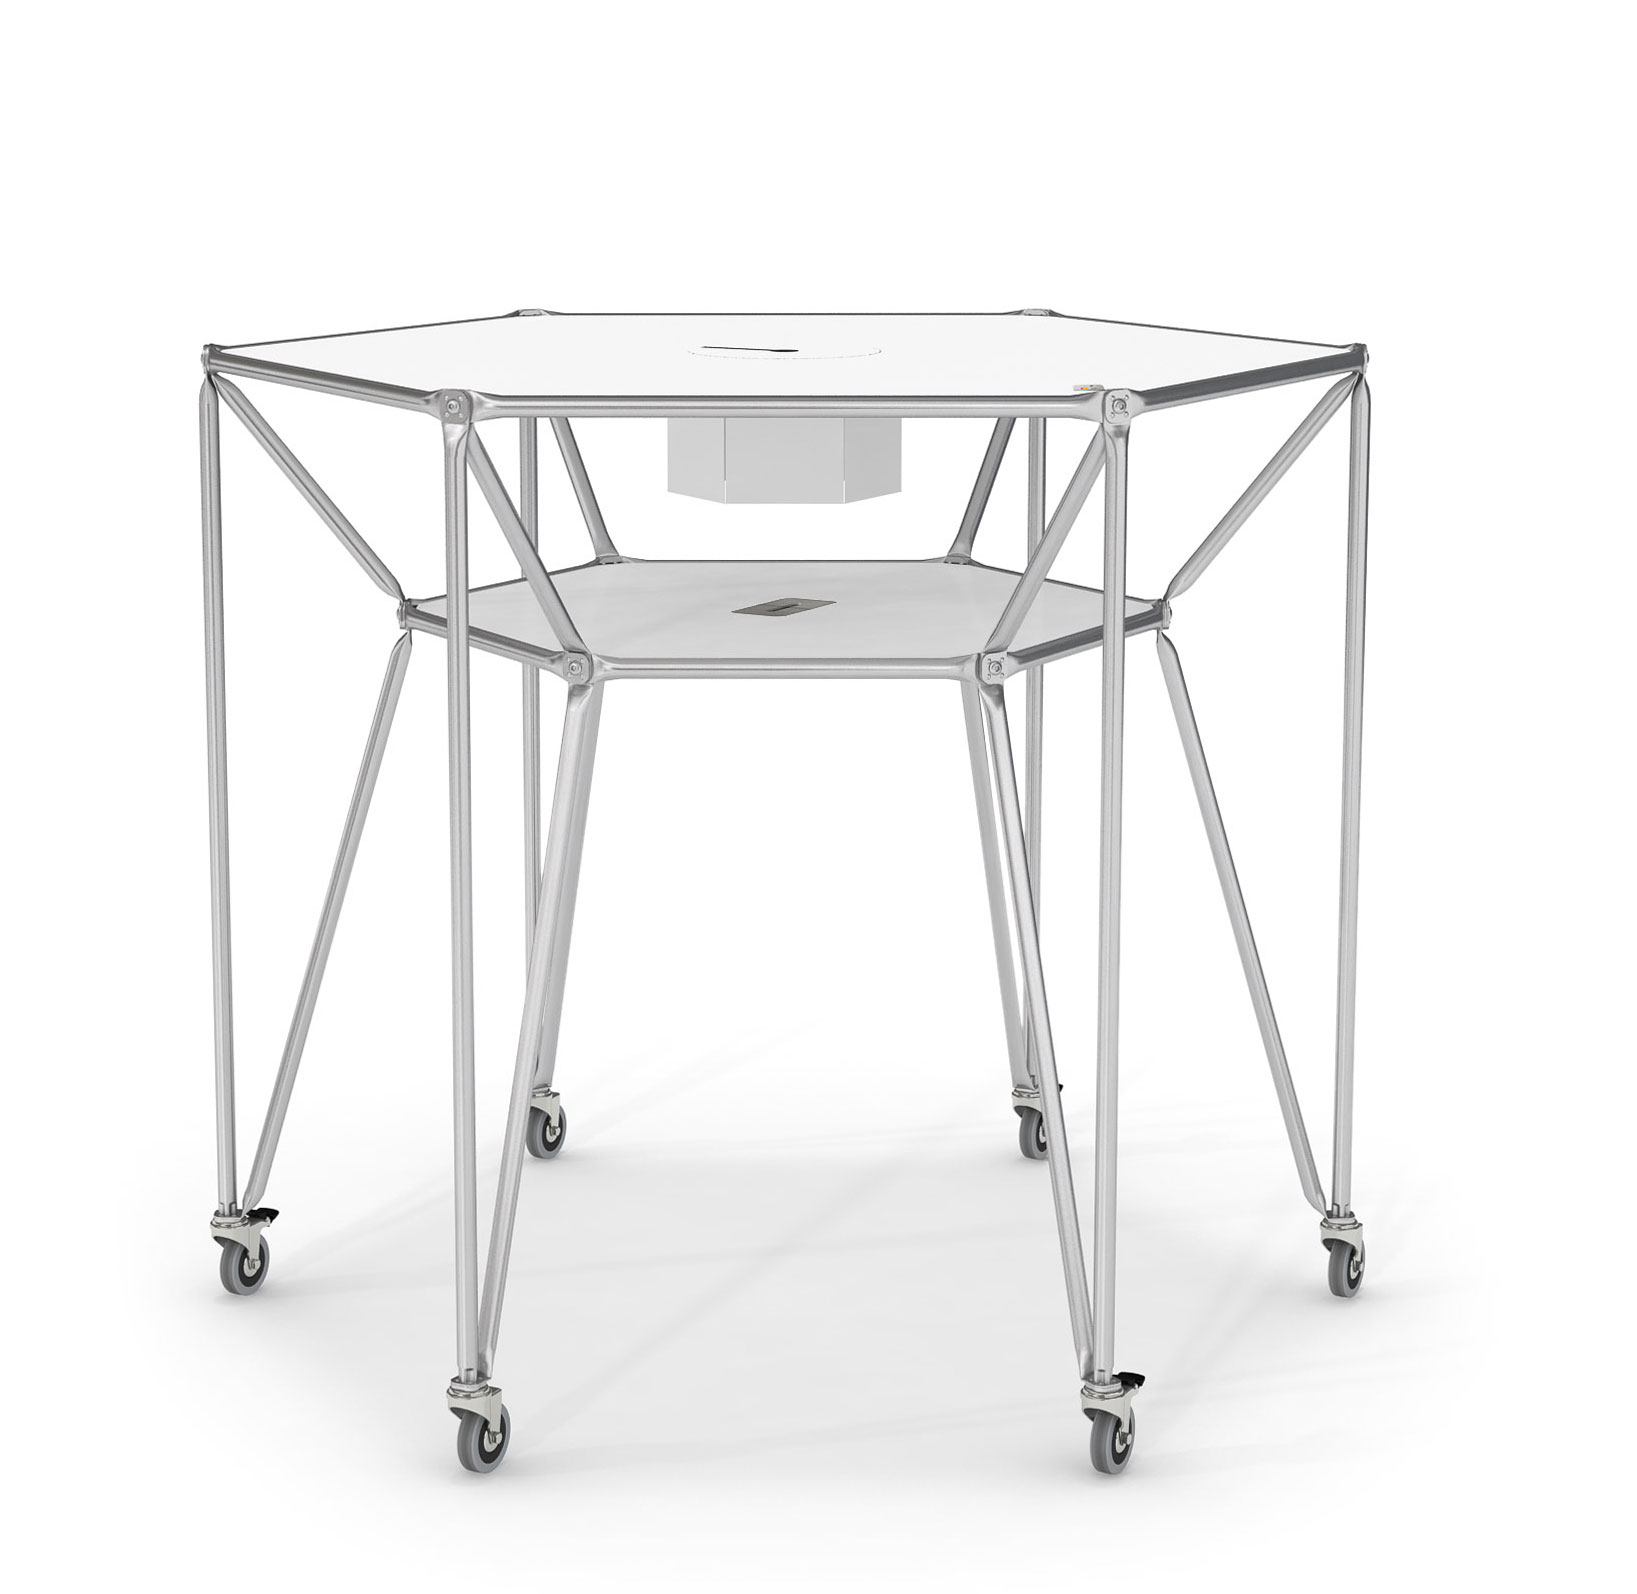 Design thinking table dt line tisch t6 hpi system 180 i for Design thinking tisch